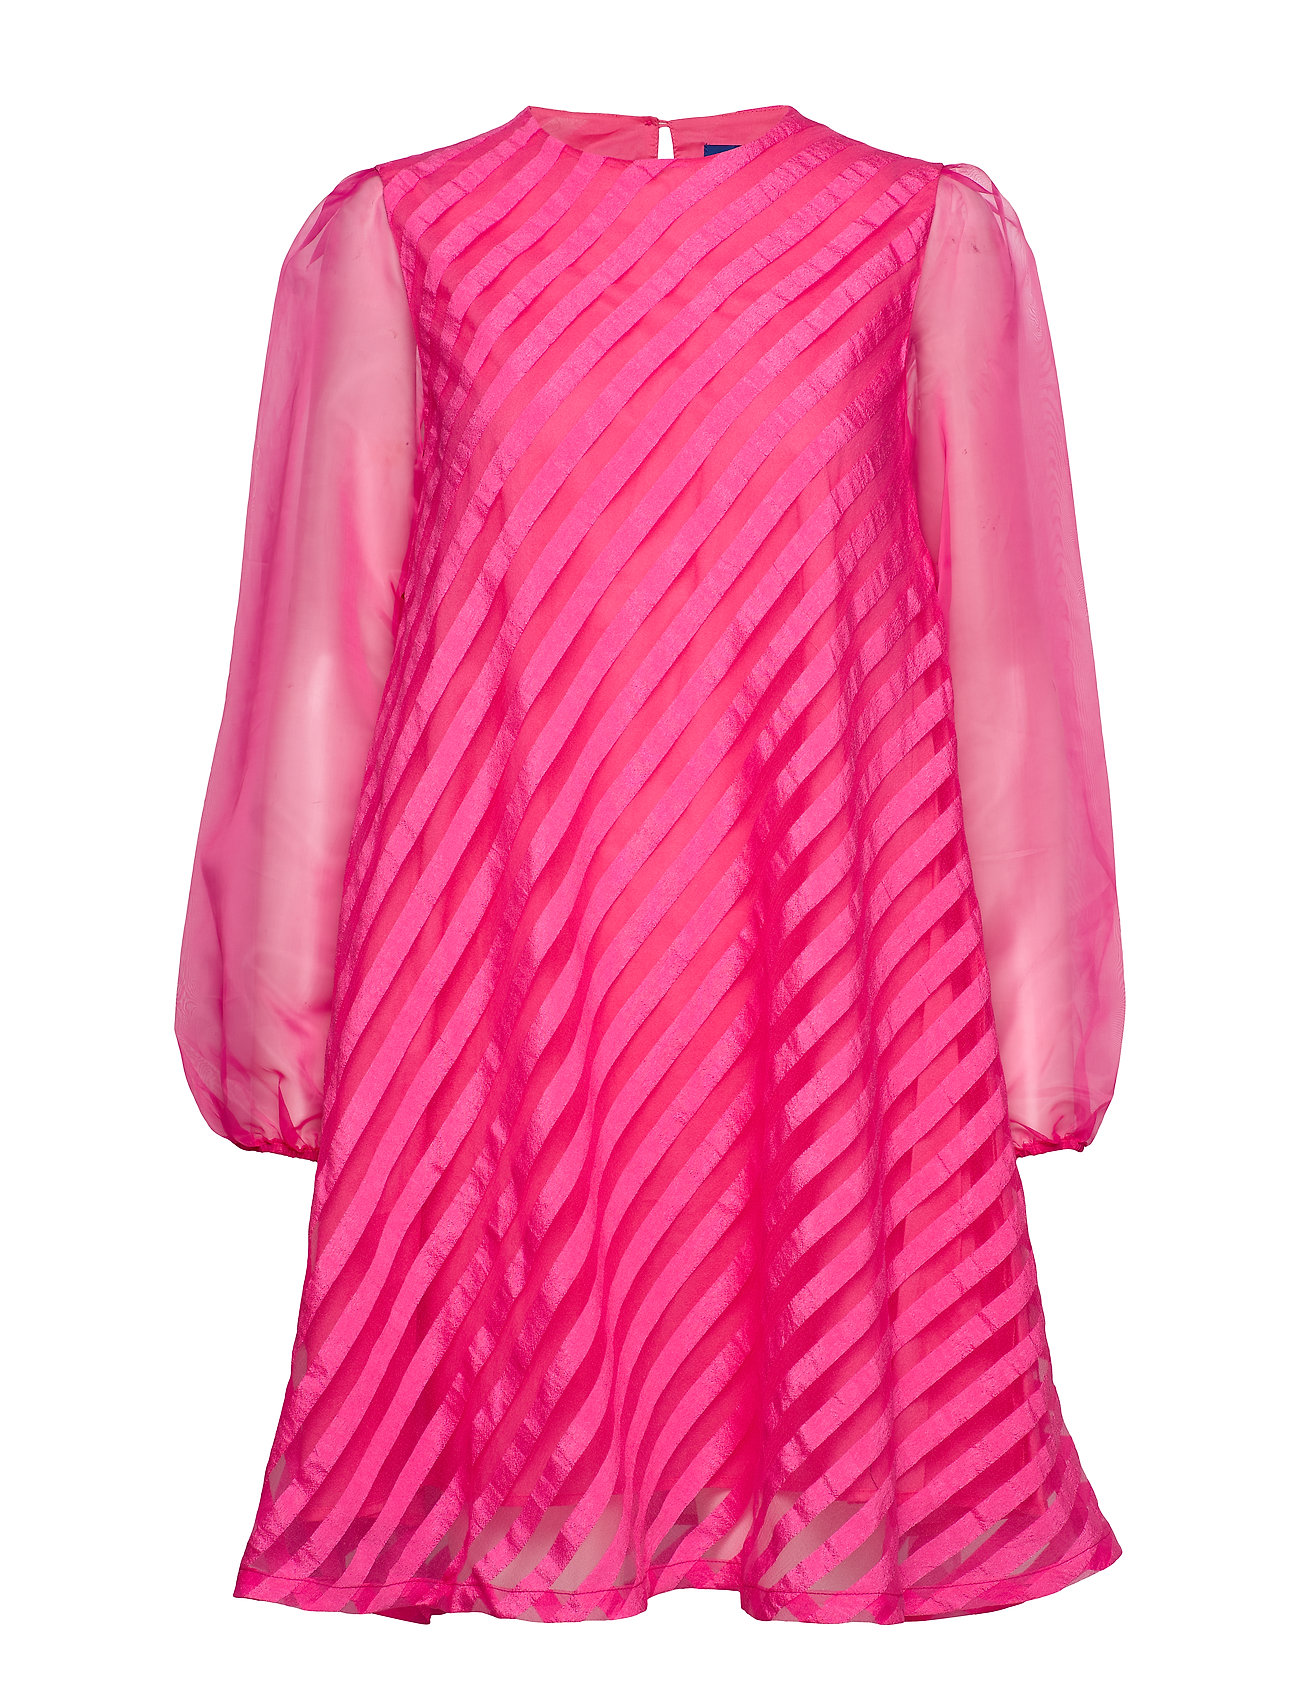 Résumé Philippa dress - COSMO PINK